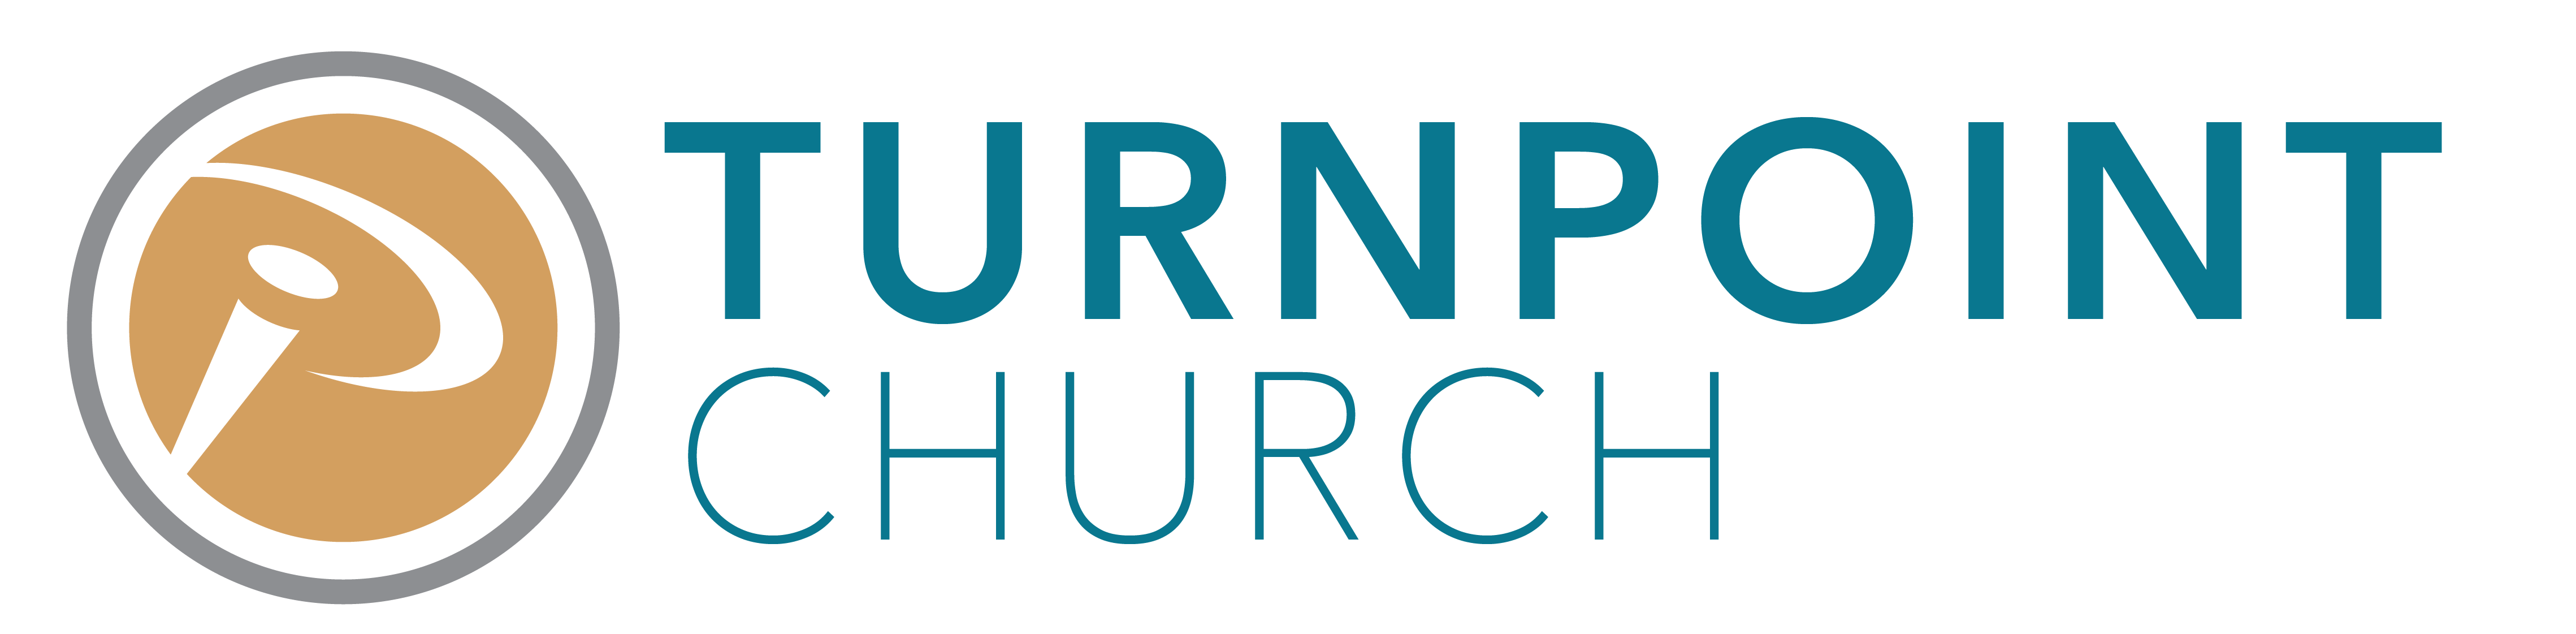 TurnPoint Church